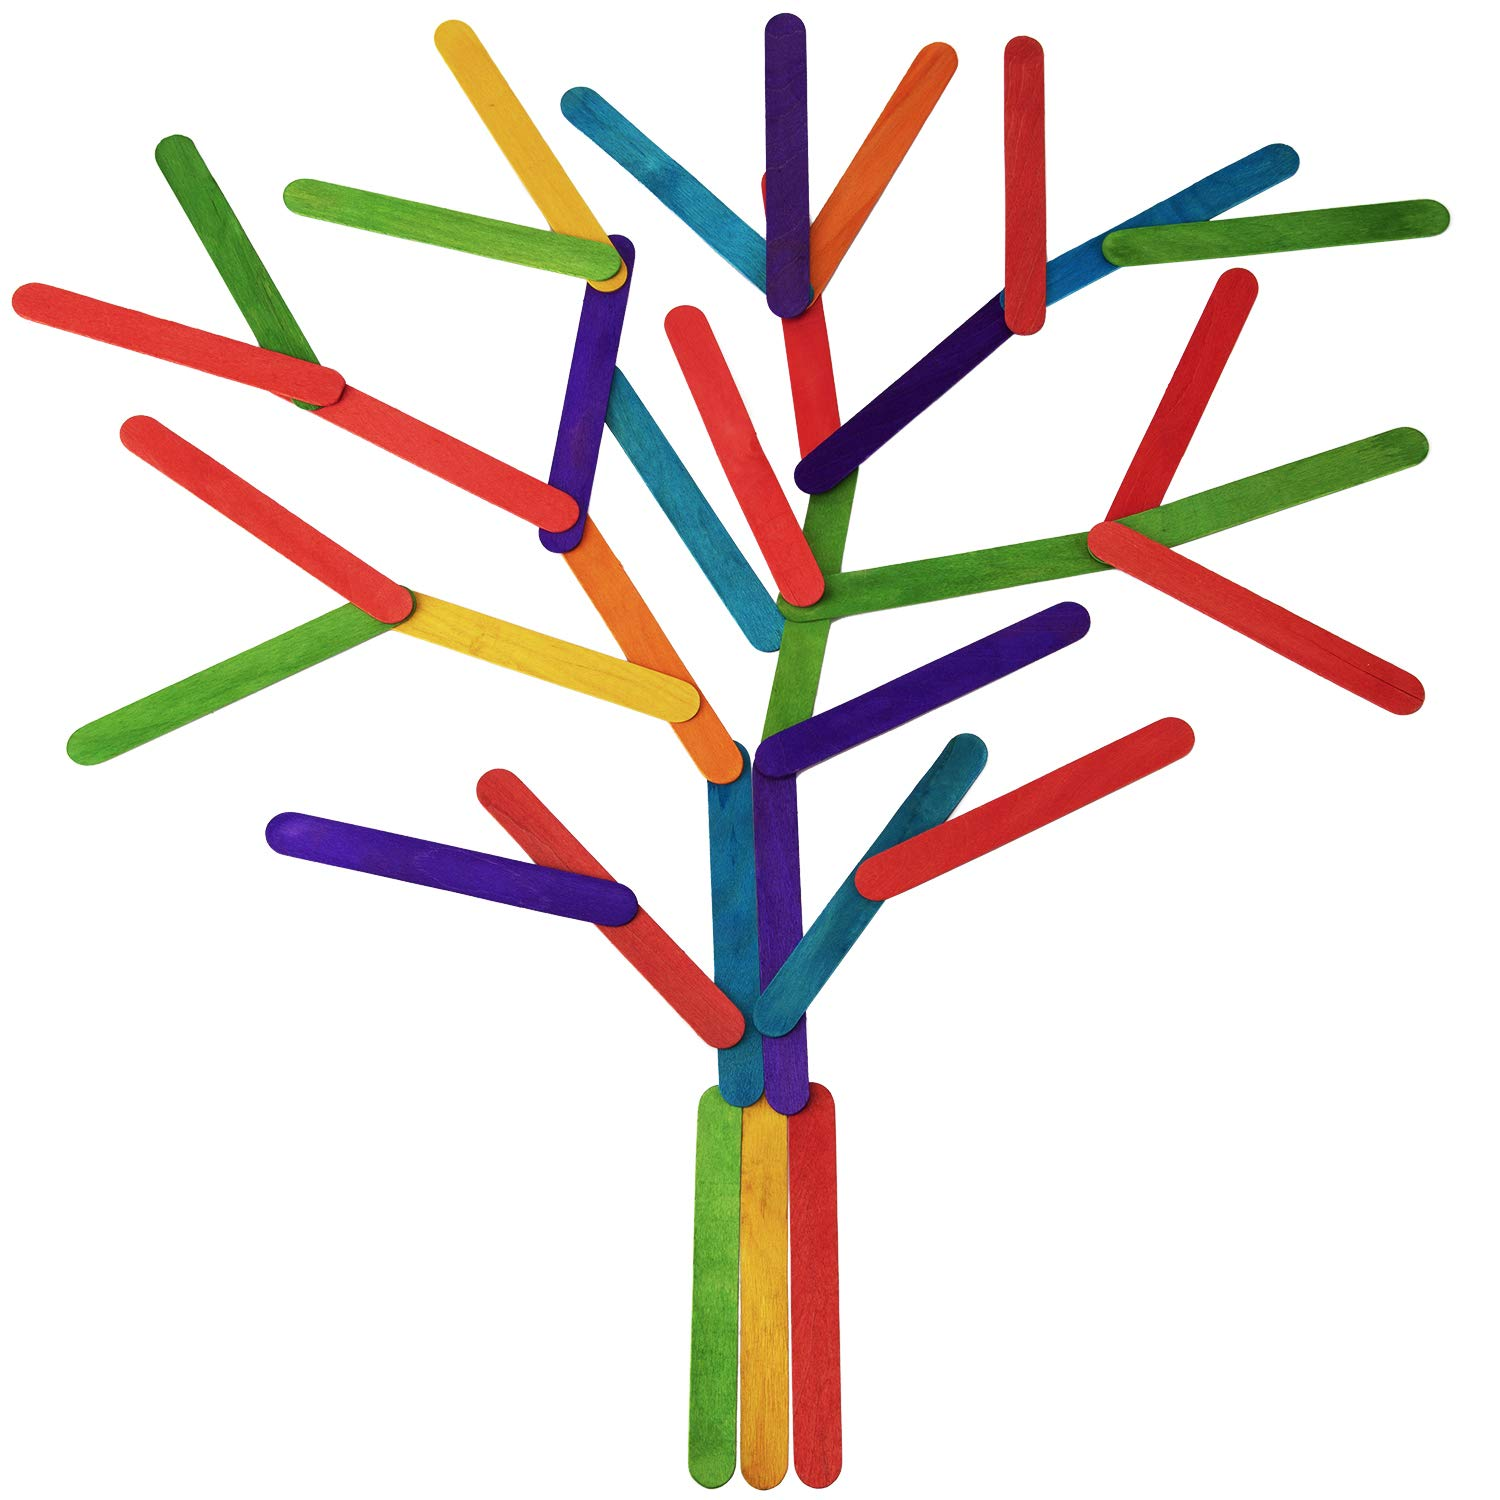 SAVITA 100 Pieces 6 Inches Multi Colored Popcicles Sticks Jumbo Wood Craft Sticks for DIY Craft Projects